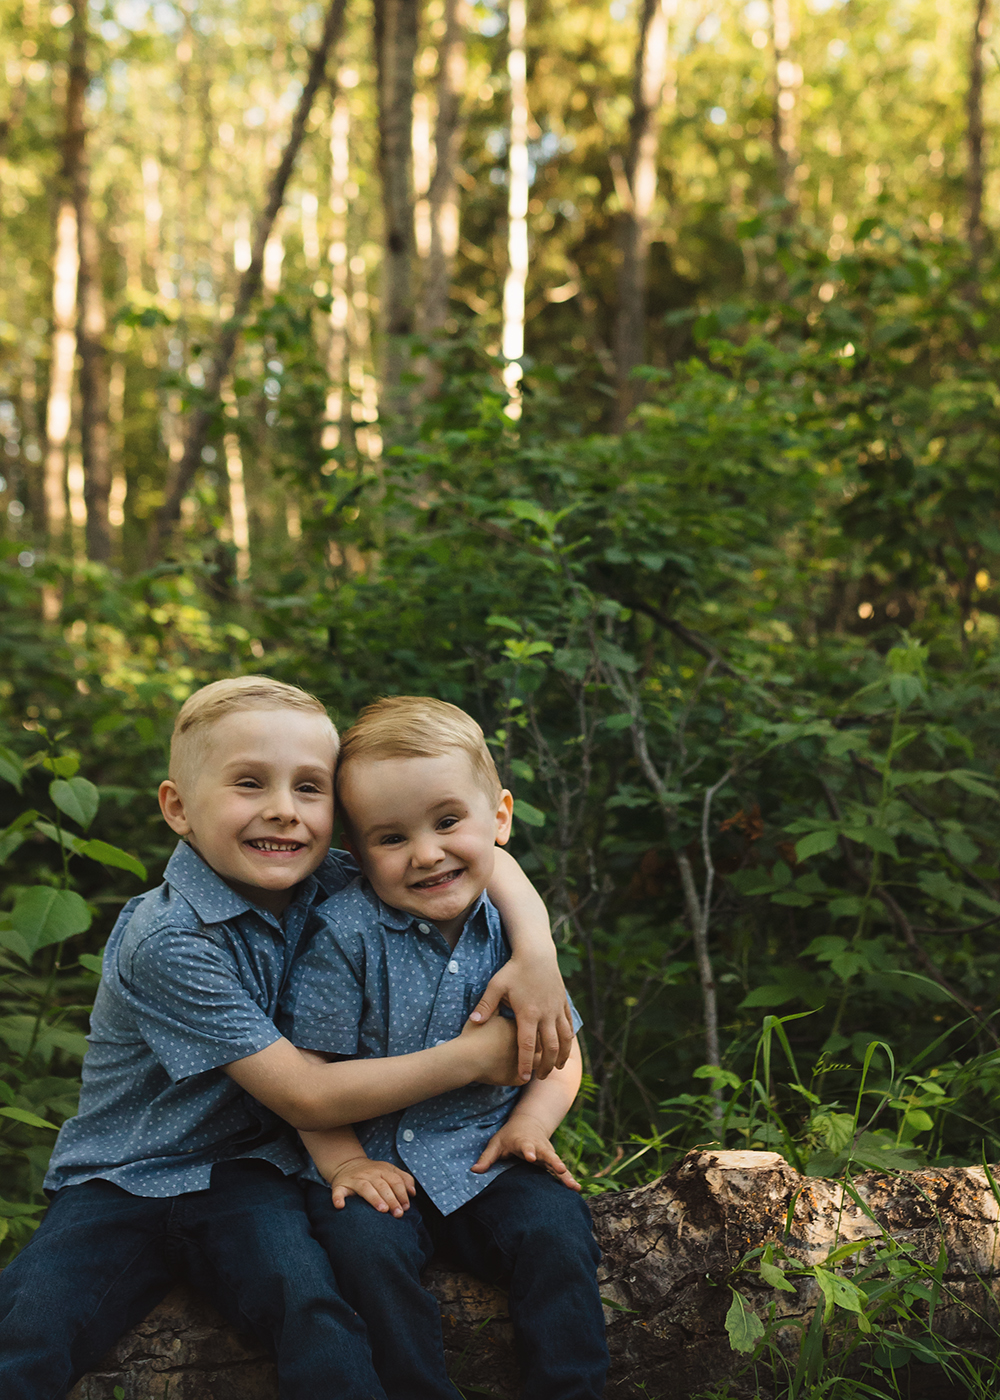 Edmonton Family Photographer_Berg Family Sneak Peek 1.jpg